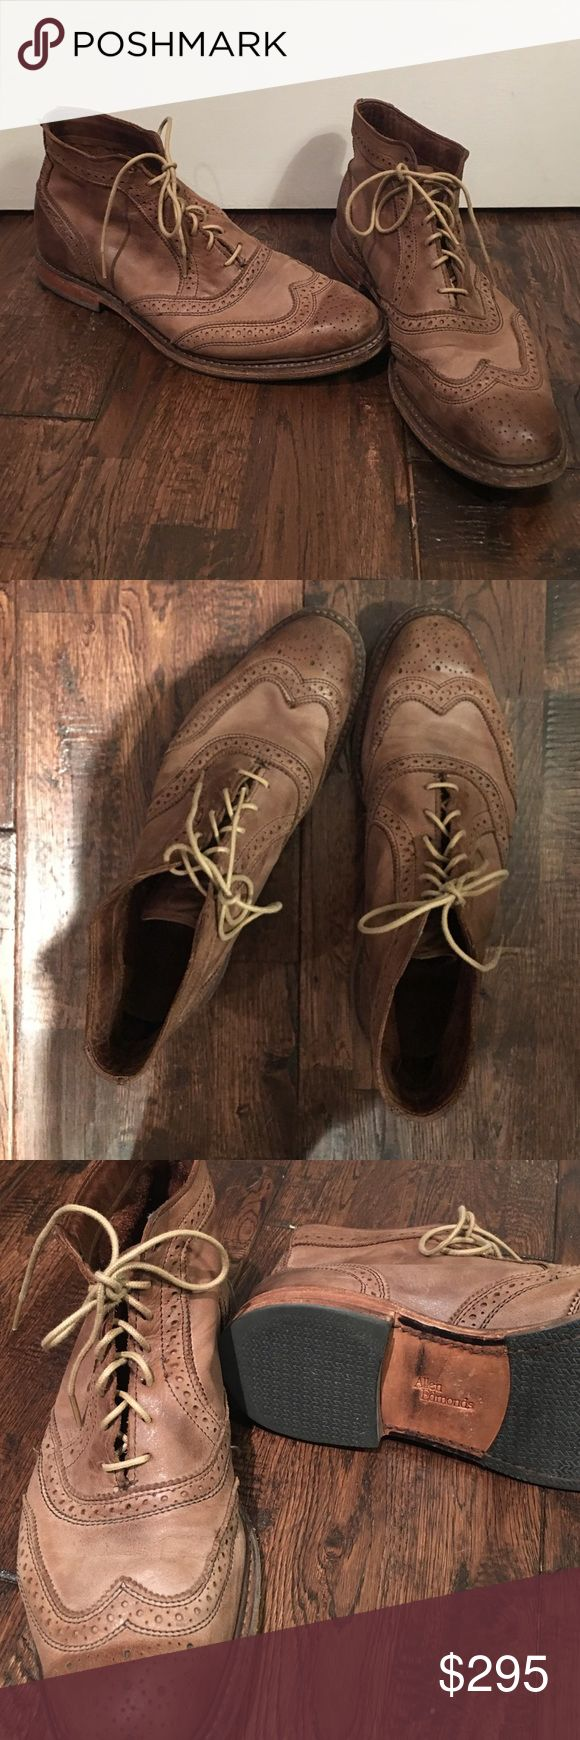 Allen Edmonds brown leather dress boots Allen Edmonds Cronmok Boot. Lace up oxford casual leather boot. Perforated brogue styling. Condition: excellent. Only been worn a few times. Allen Edmonds Shoes Boots